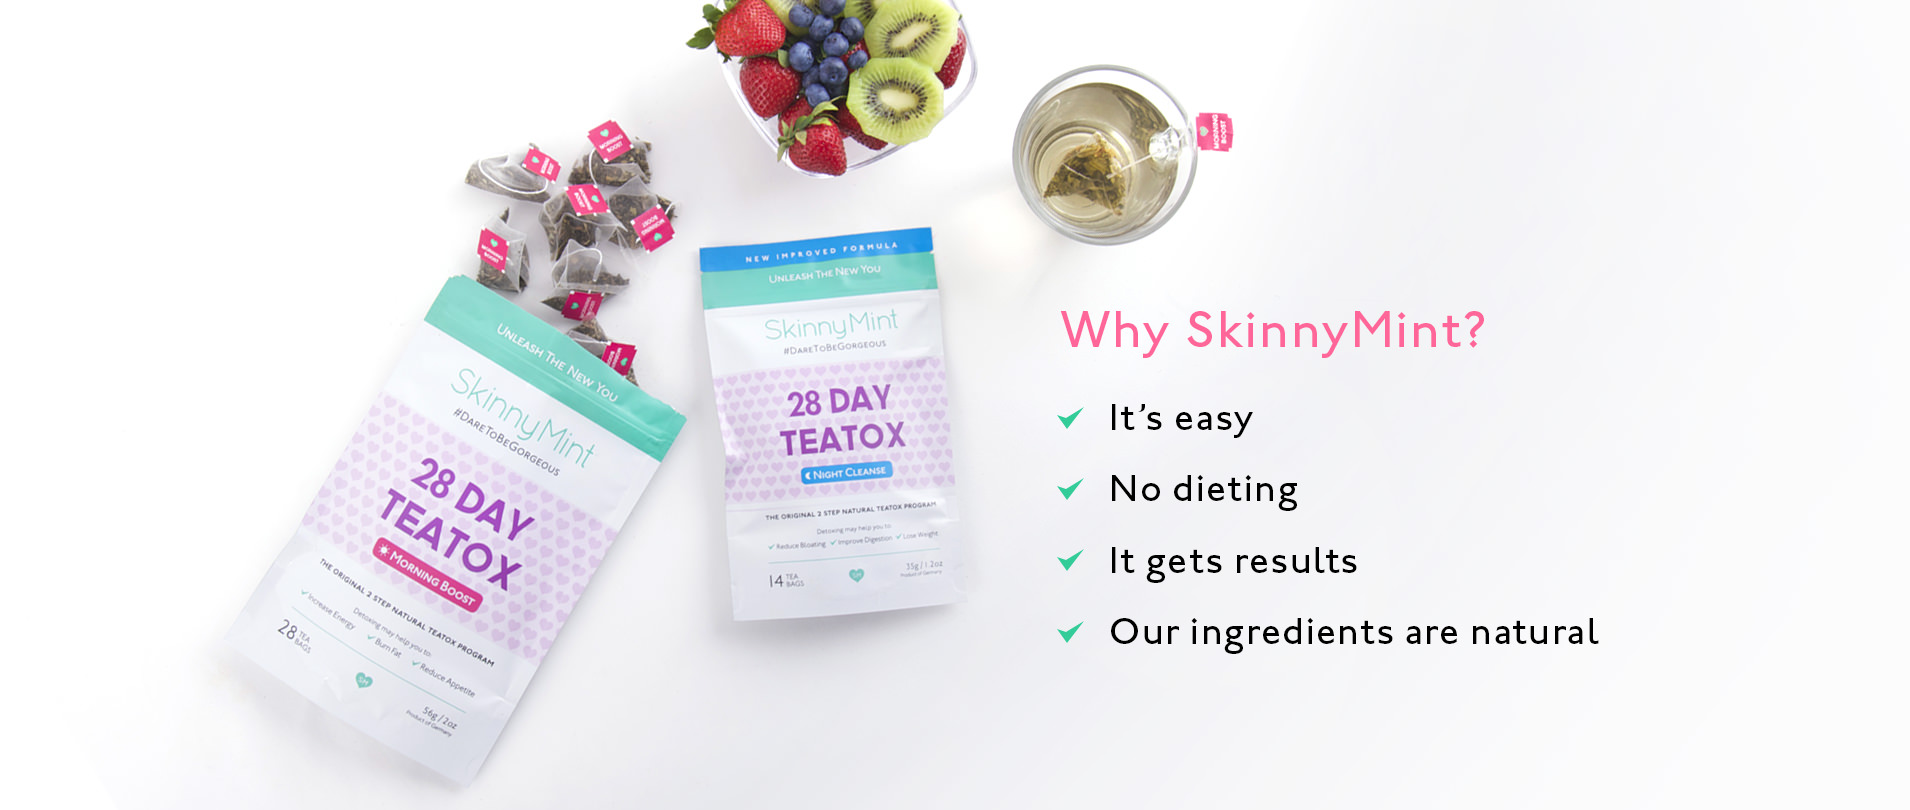 Natural organic ingredients in SkinnyMint night cleanse and morning boost to boost metabolism